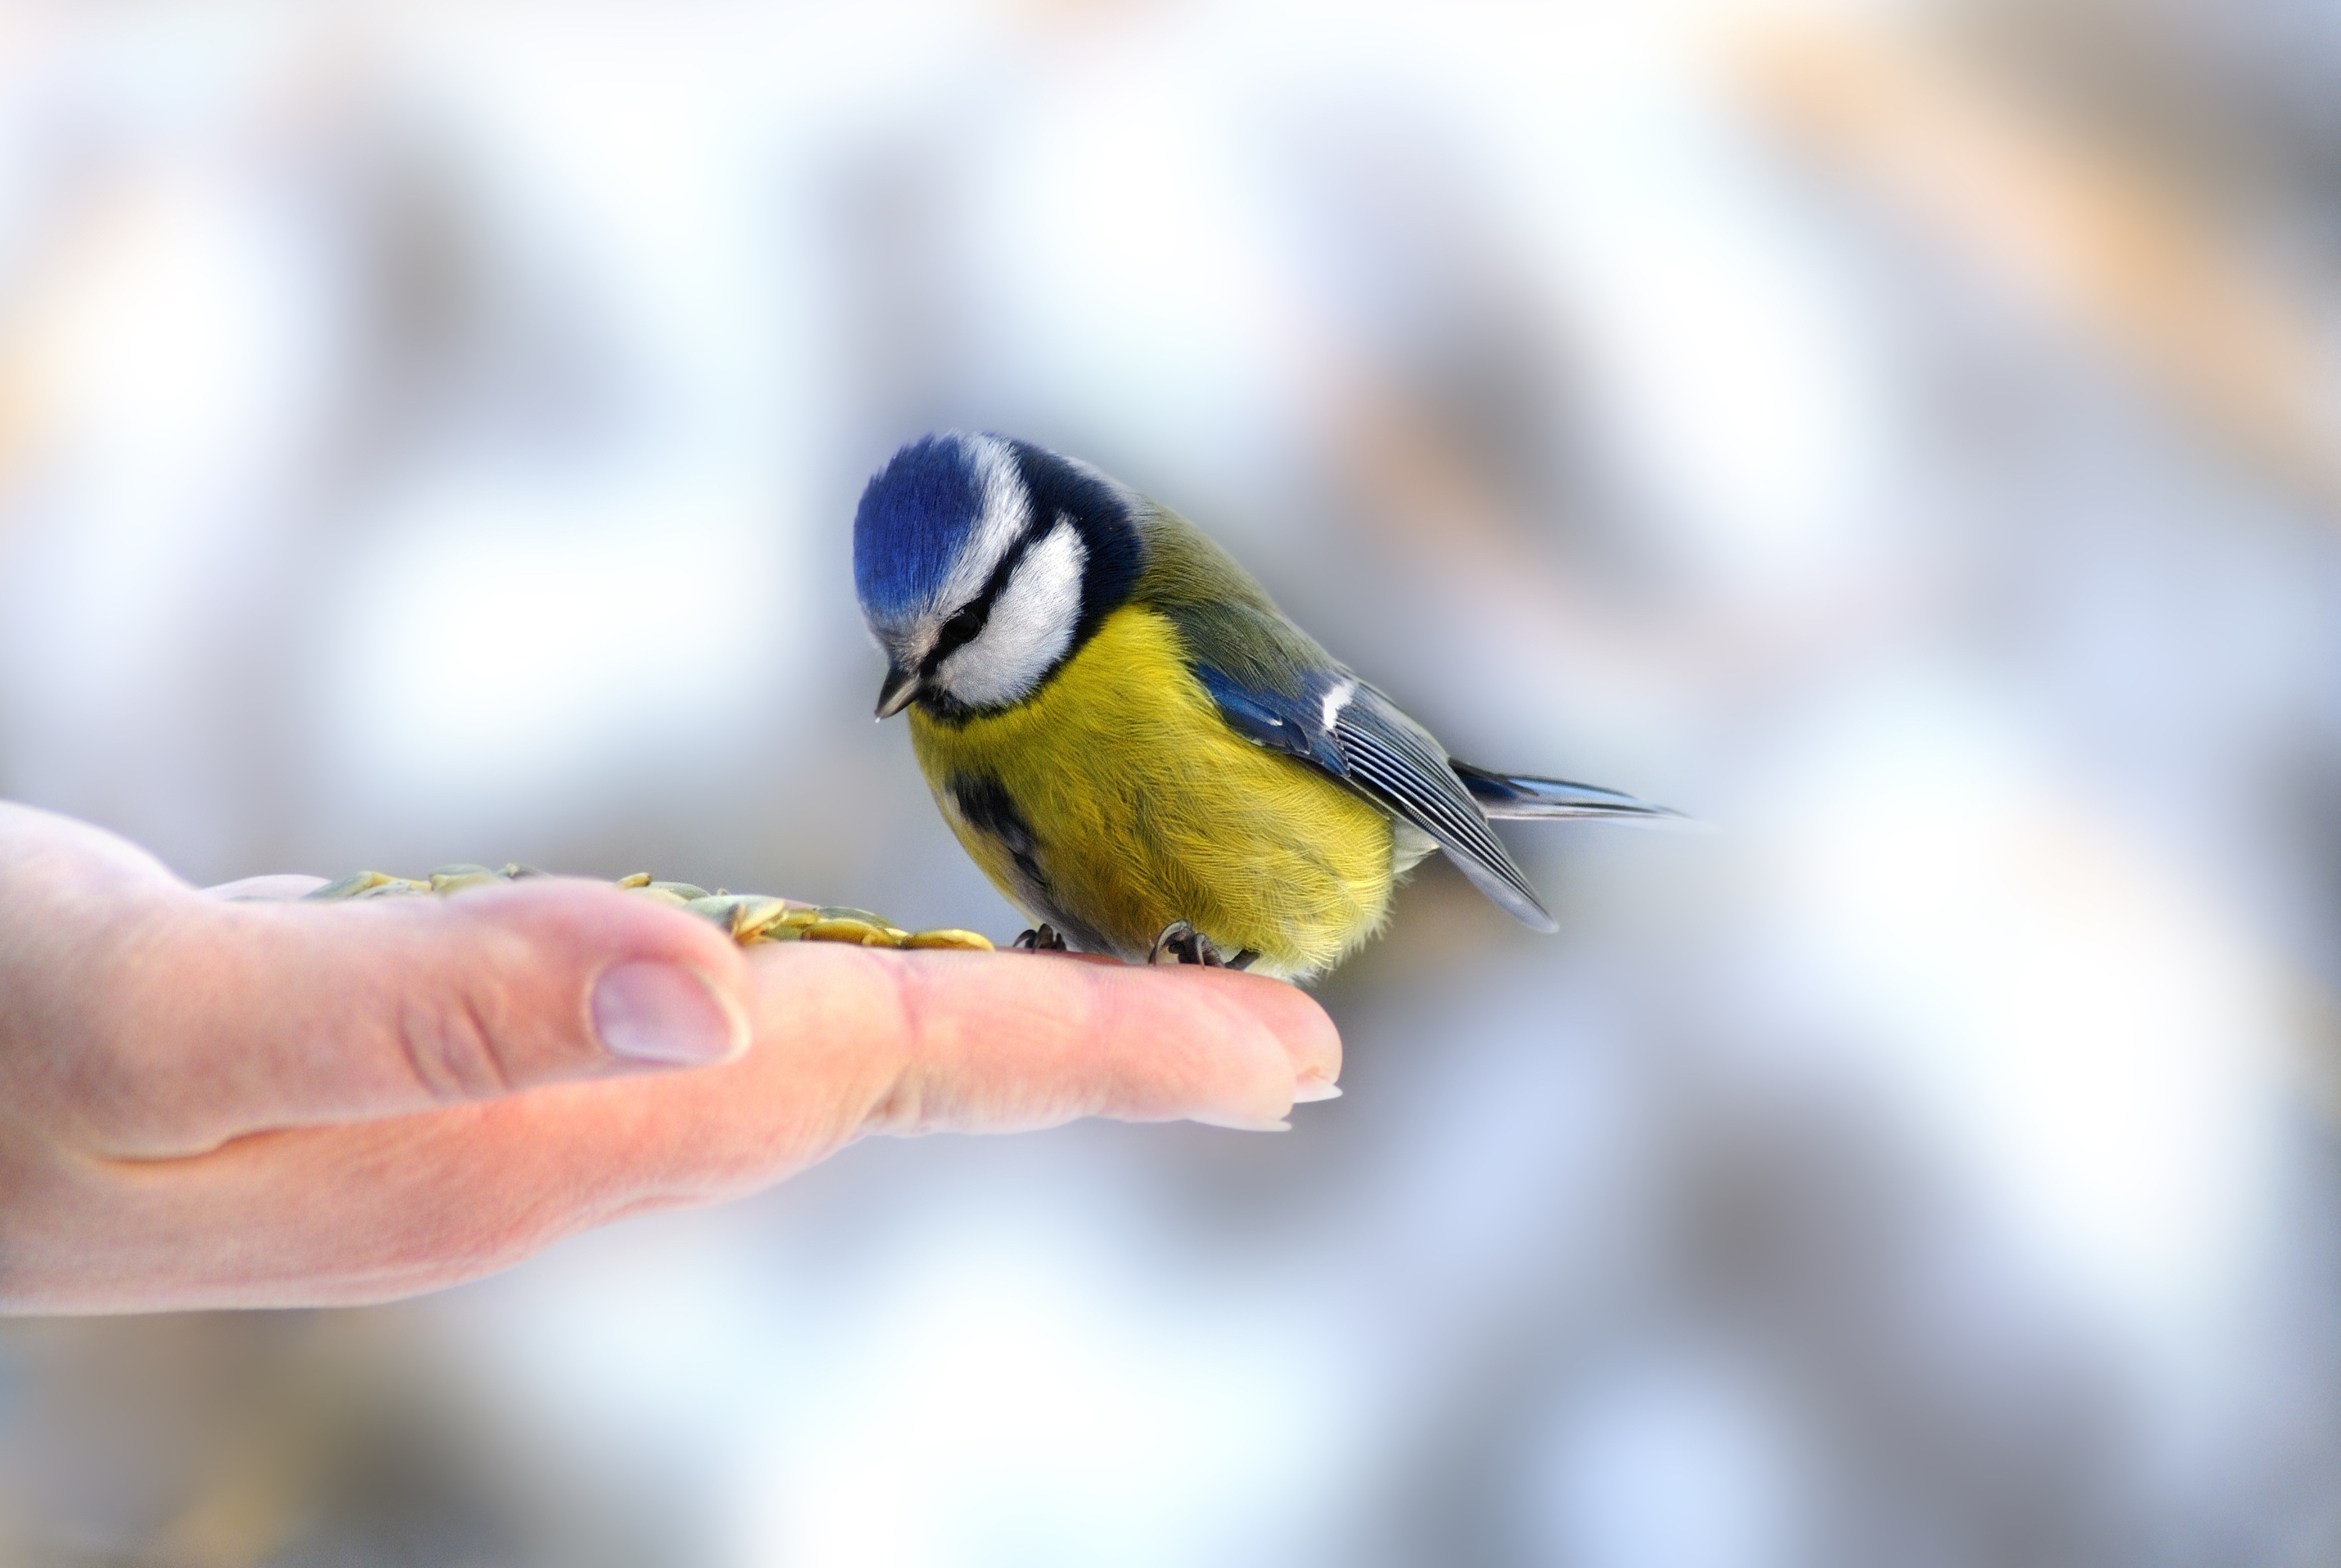 How To Attract Songbirds   how to   garden   backyard   songbirds   birds   how to attract birds   attract birds